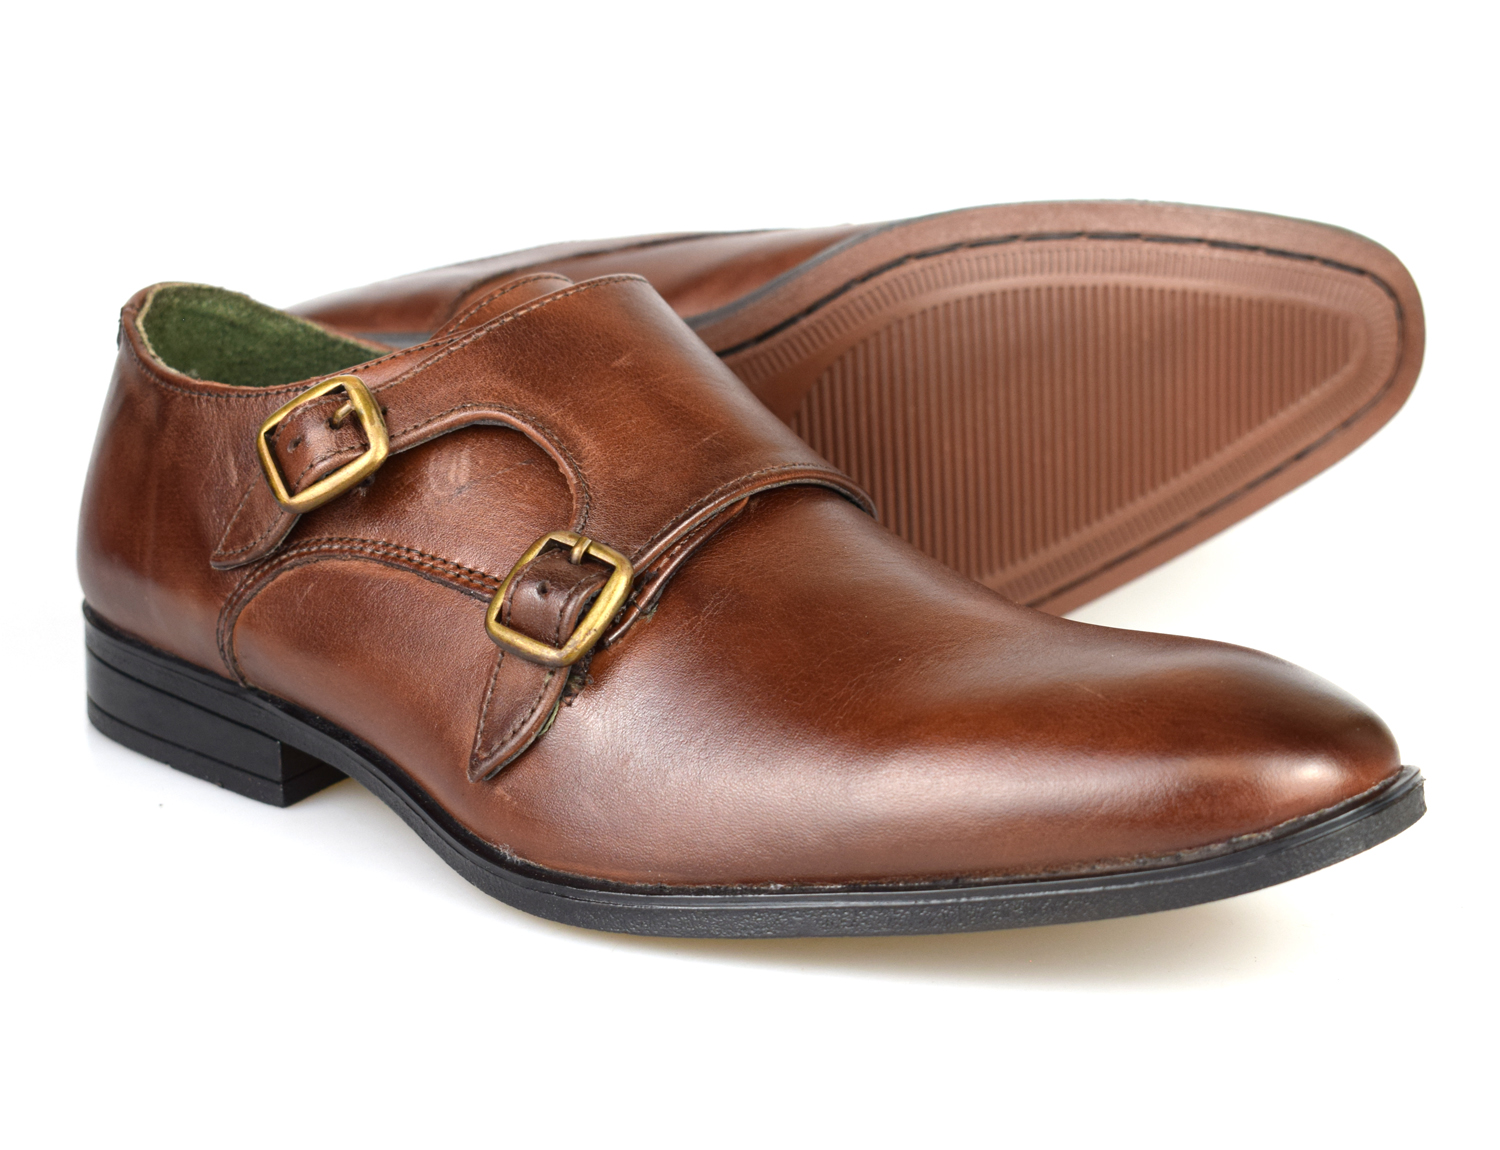 Silver Street London Bourne Brown Leather Formal Monk Shoes